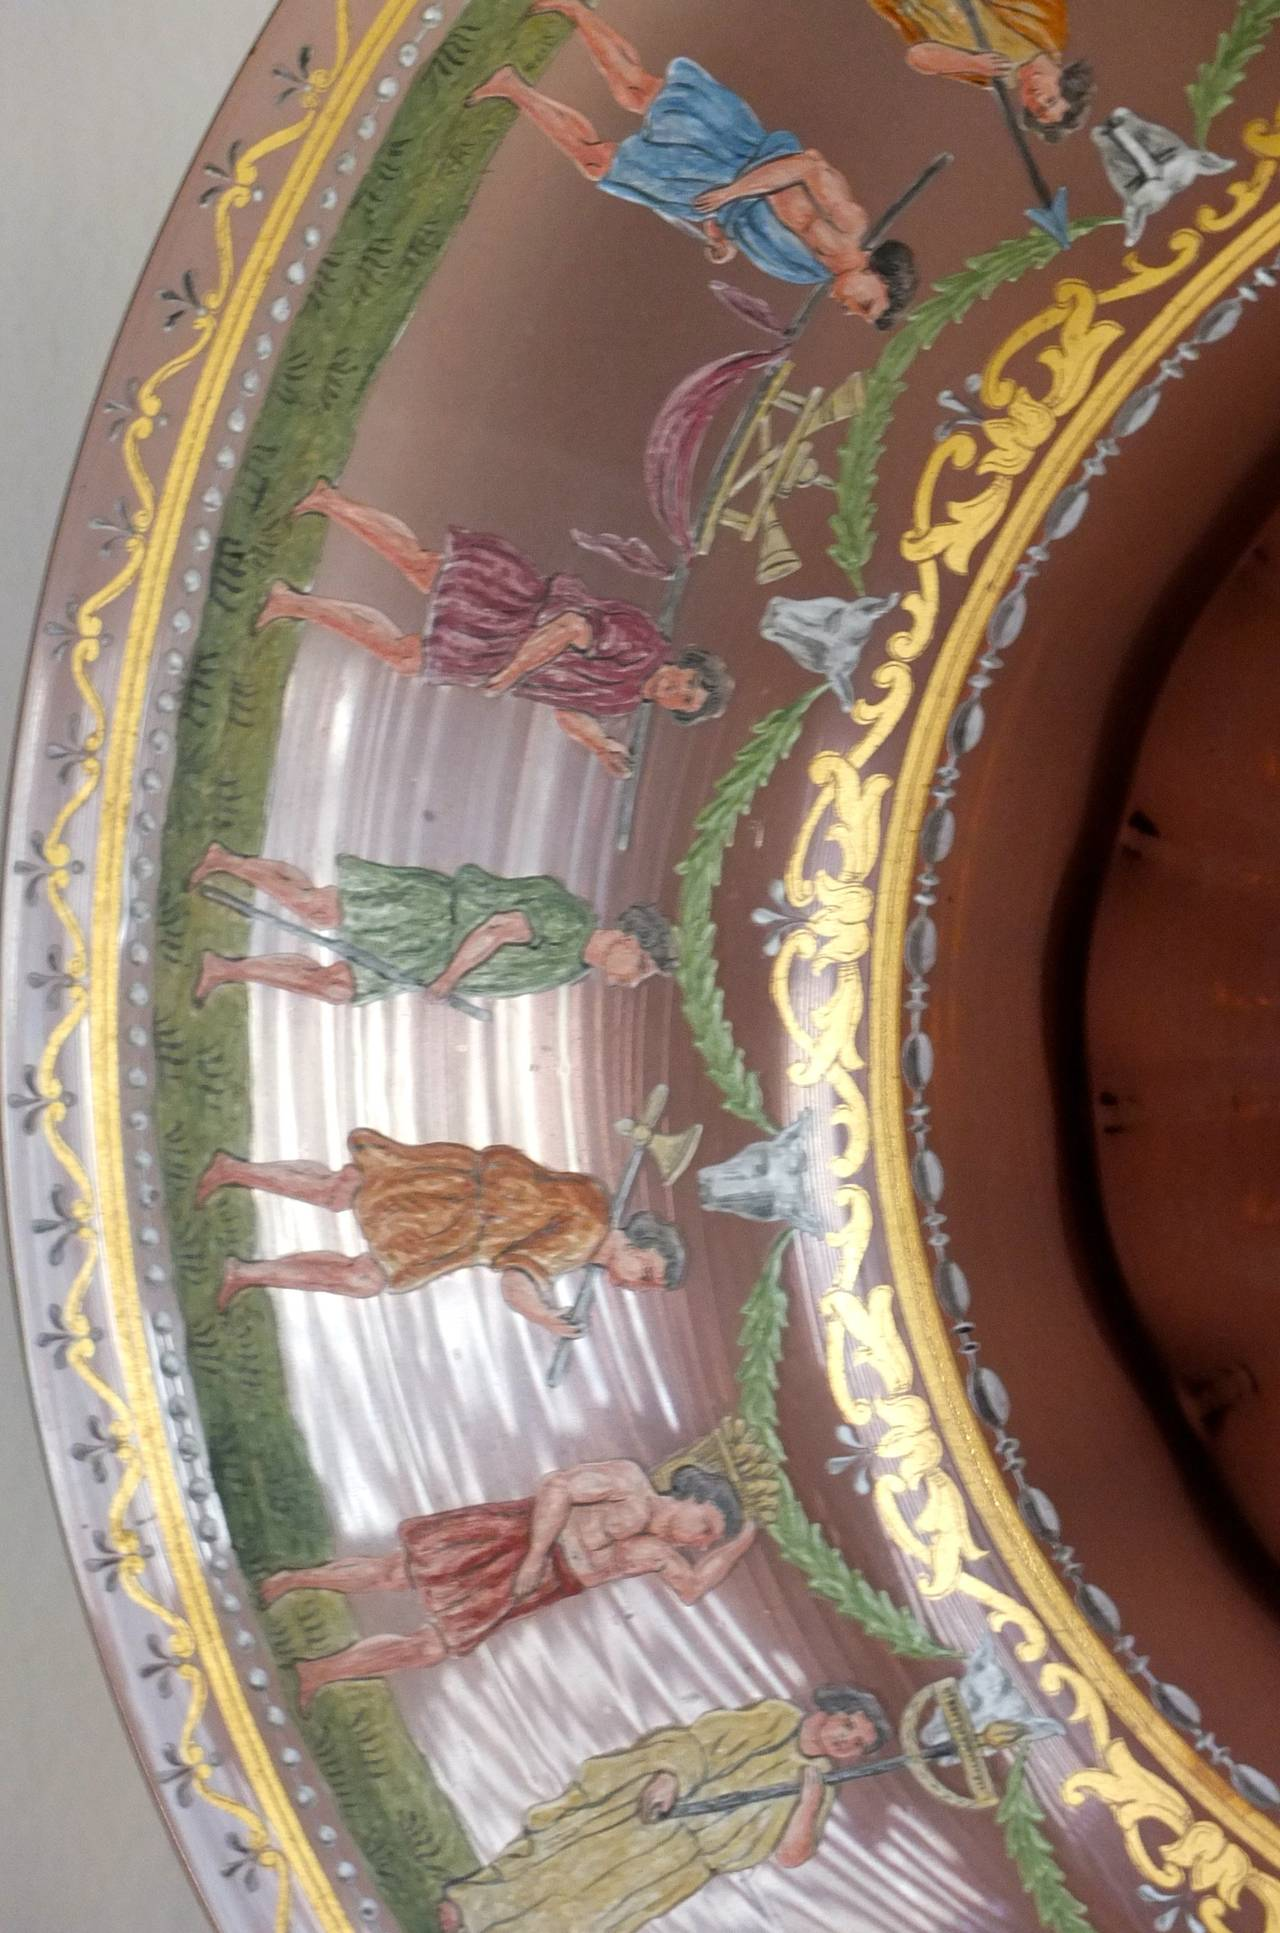 Early 20th Century Salviati & C. Venetian Polychrome Enameled and Gilded Glass Centerpiece For Sale